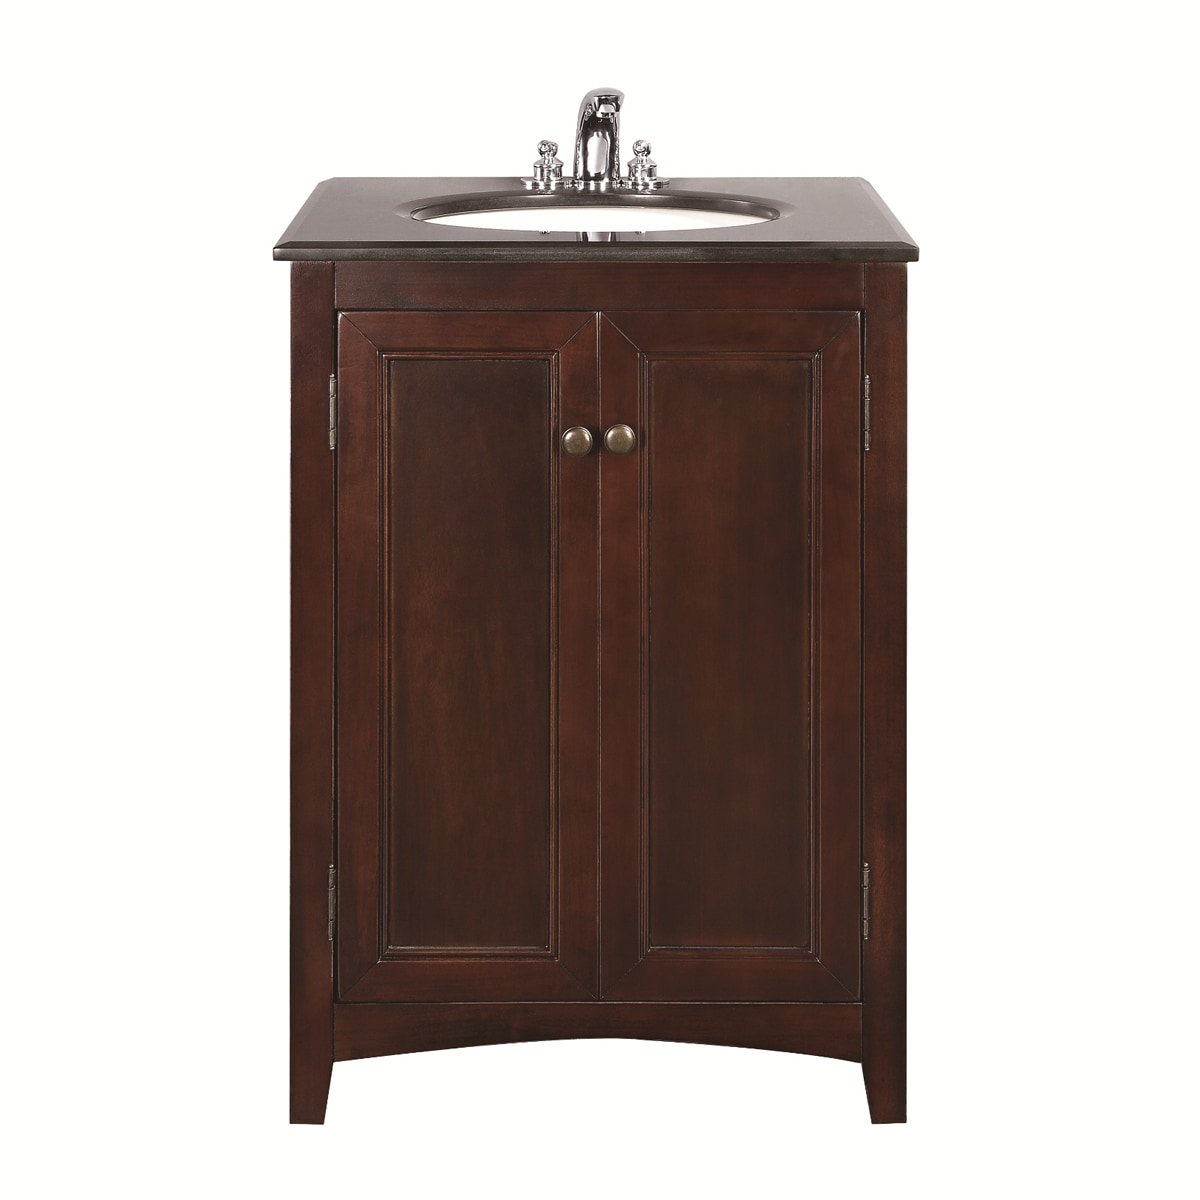 walnut brown 24 inch bath vanity with 2 doors and black granite top